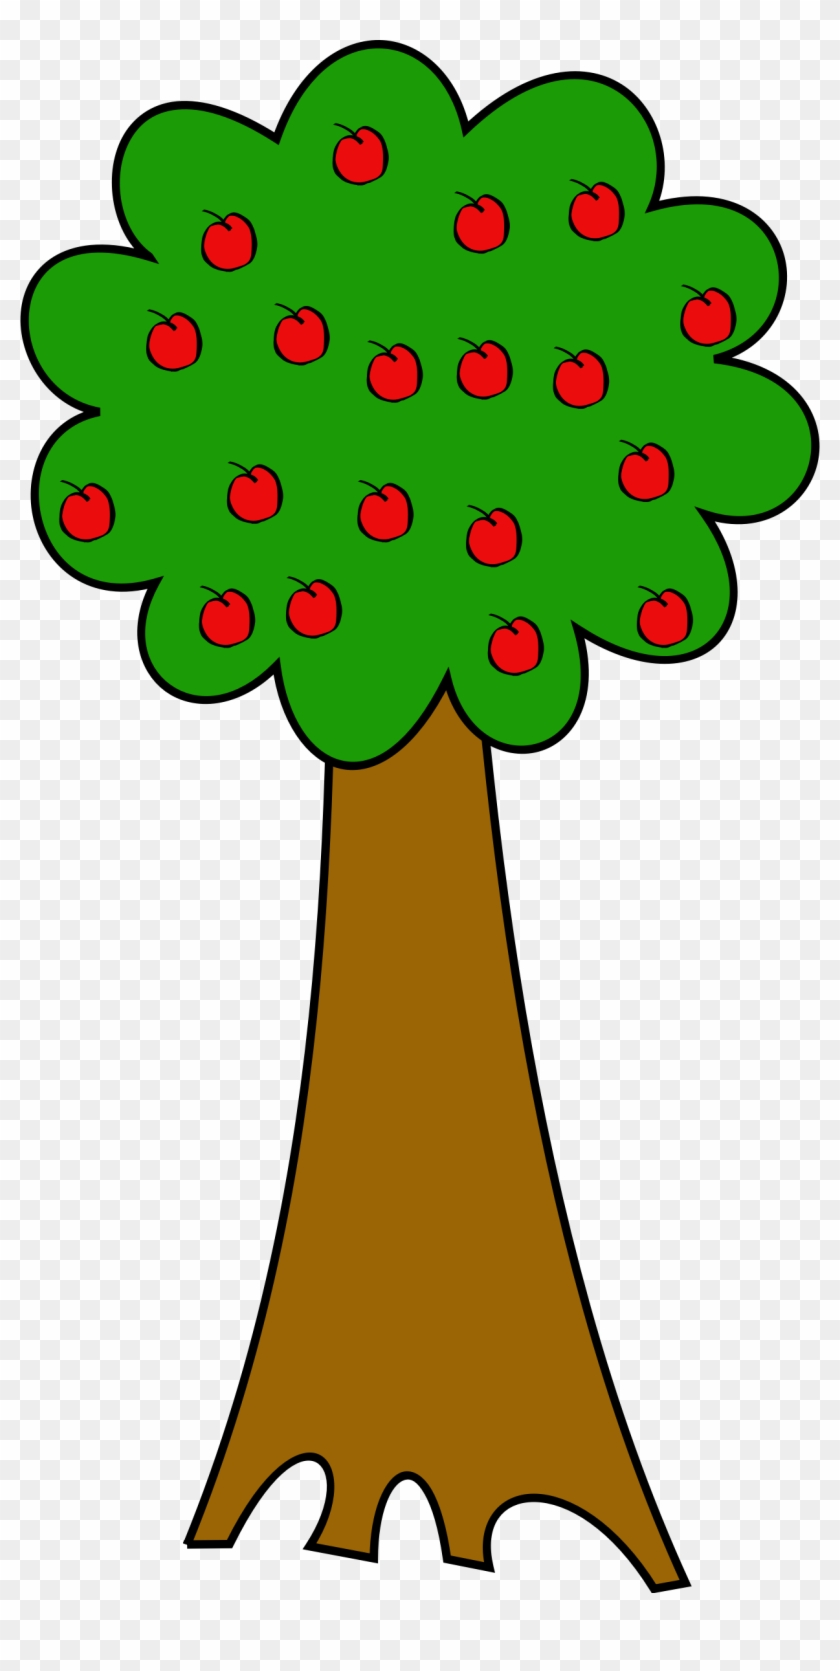 Apple Trees Clip Art - Tree With Fruits #43751